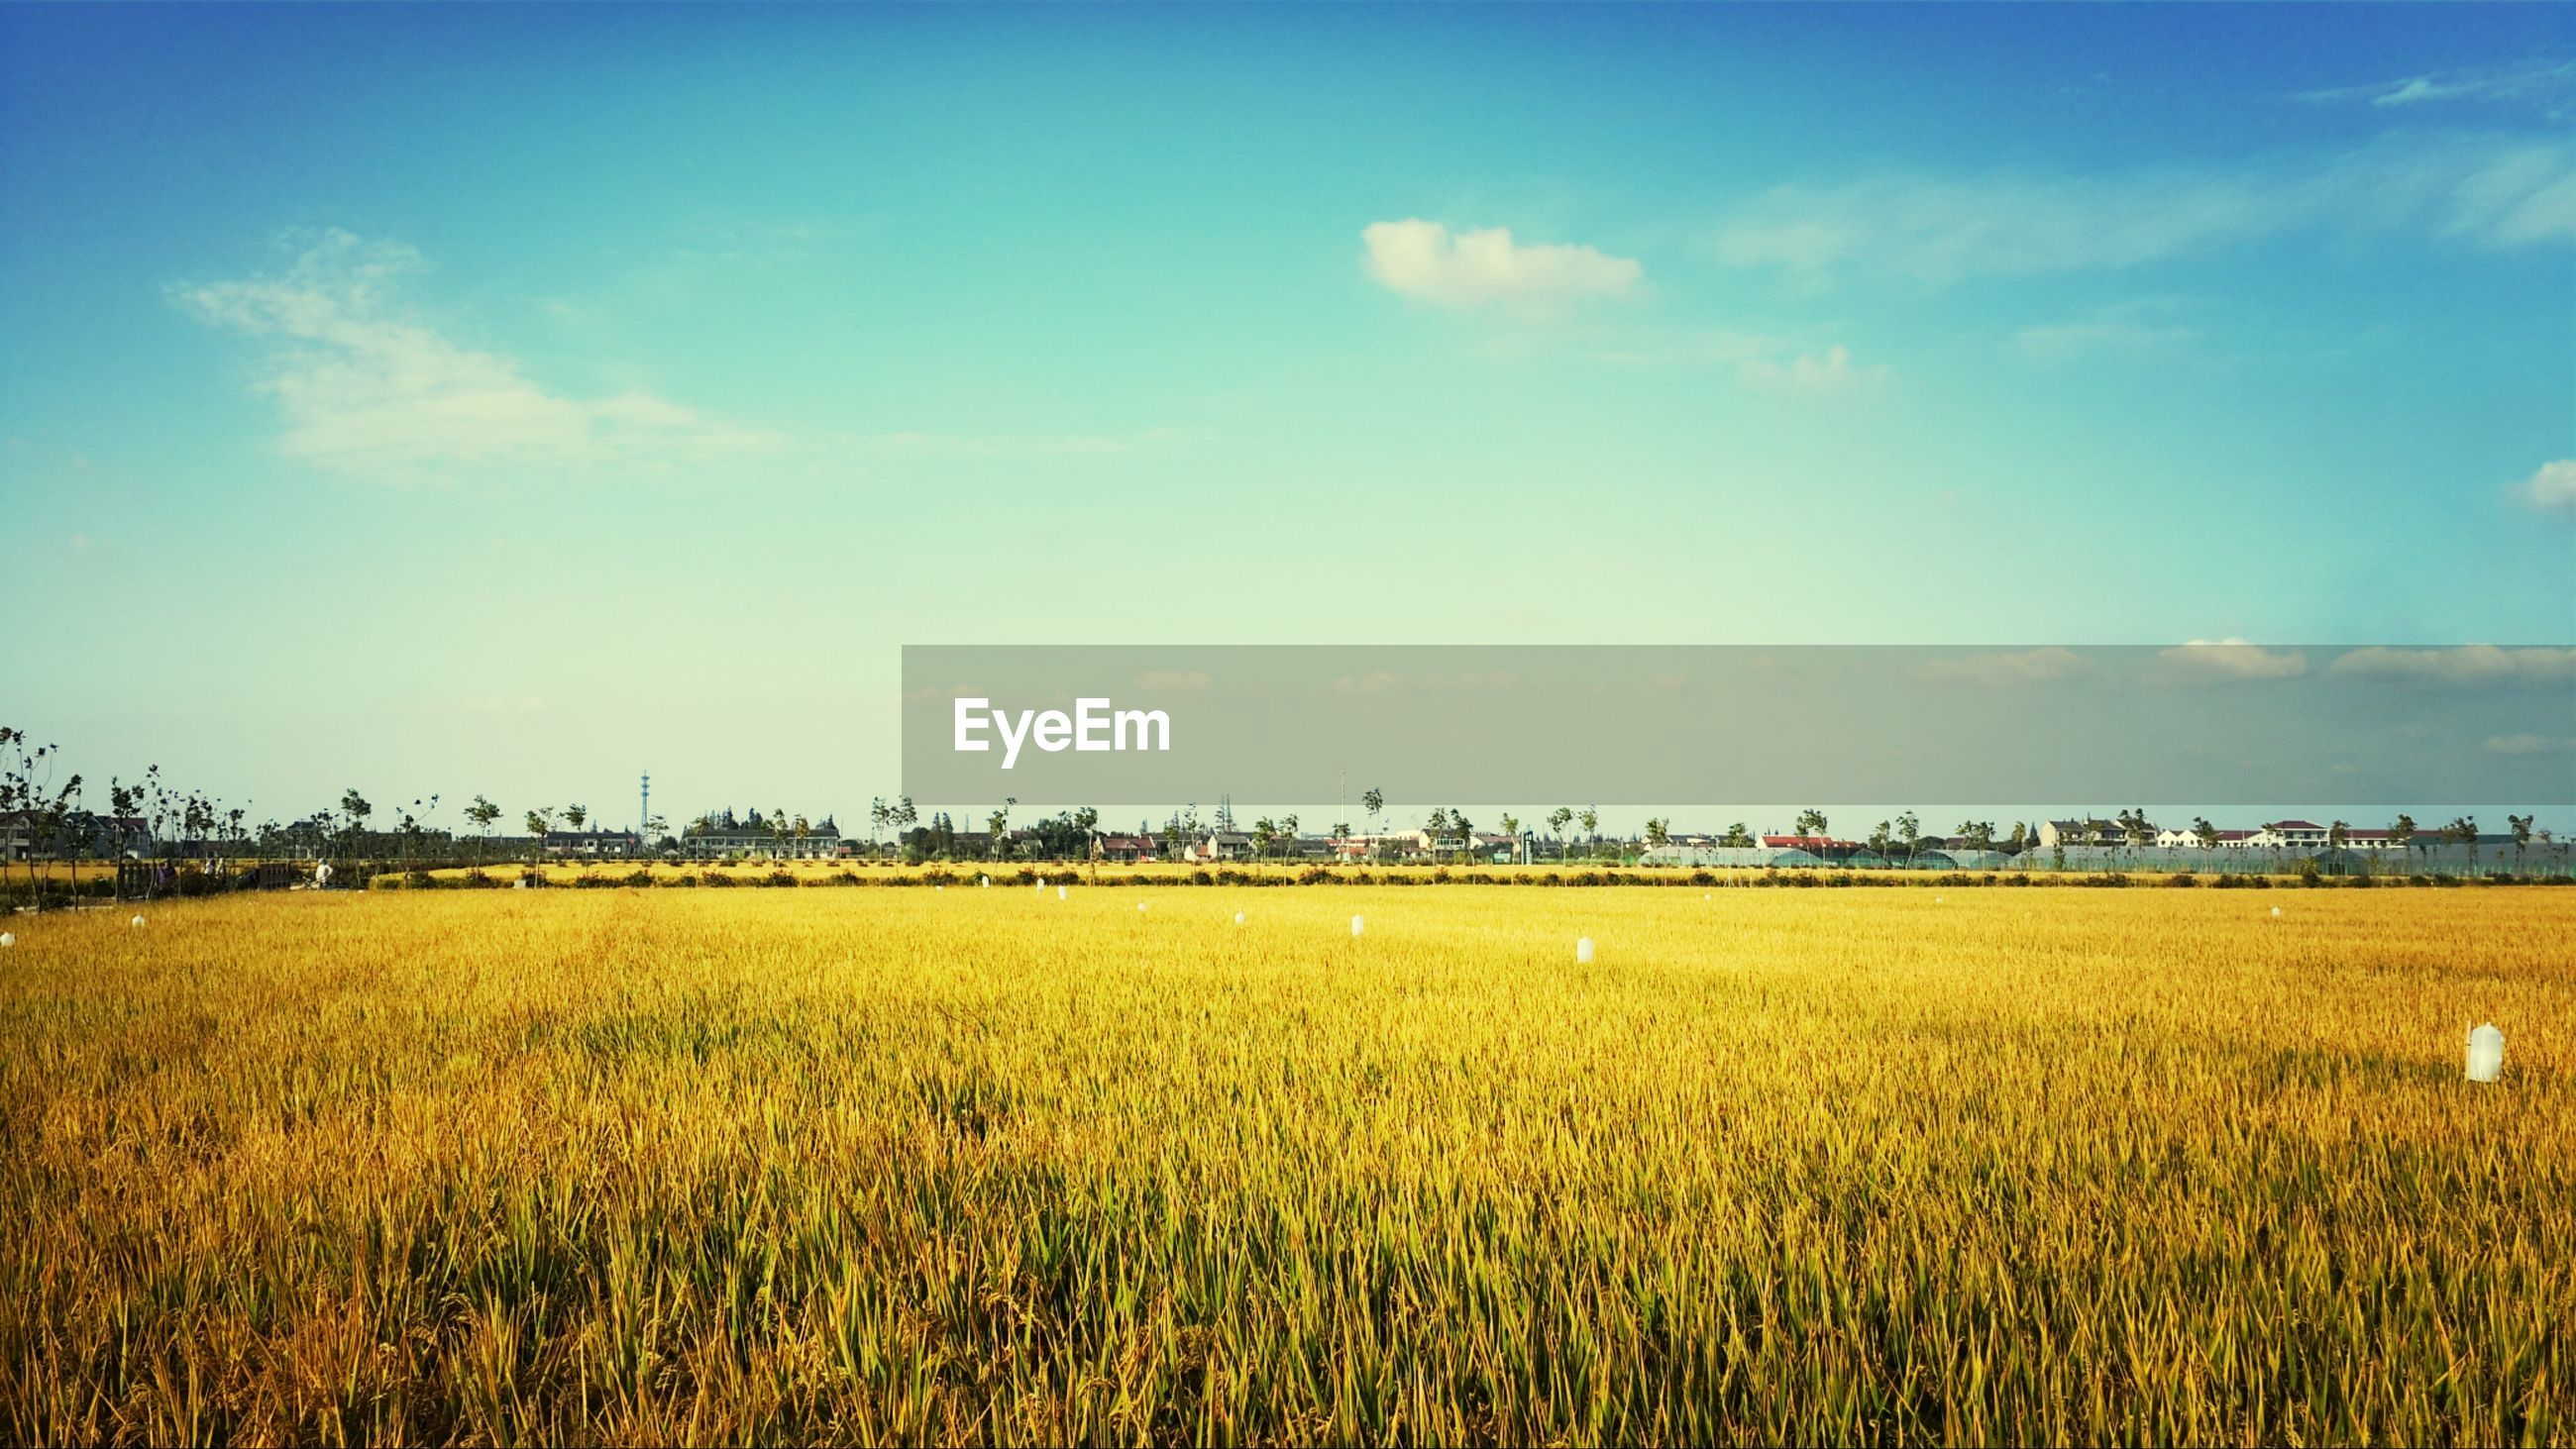 agriculture, field, rural scene, yellow, farm, landscape, growth, crop, sky, beauty in nature, tranquil scene, tranquility, nature, scenics, flower, cultivated land, oilseed rape, plant, blue, horizon over land